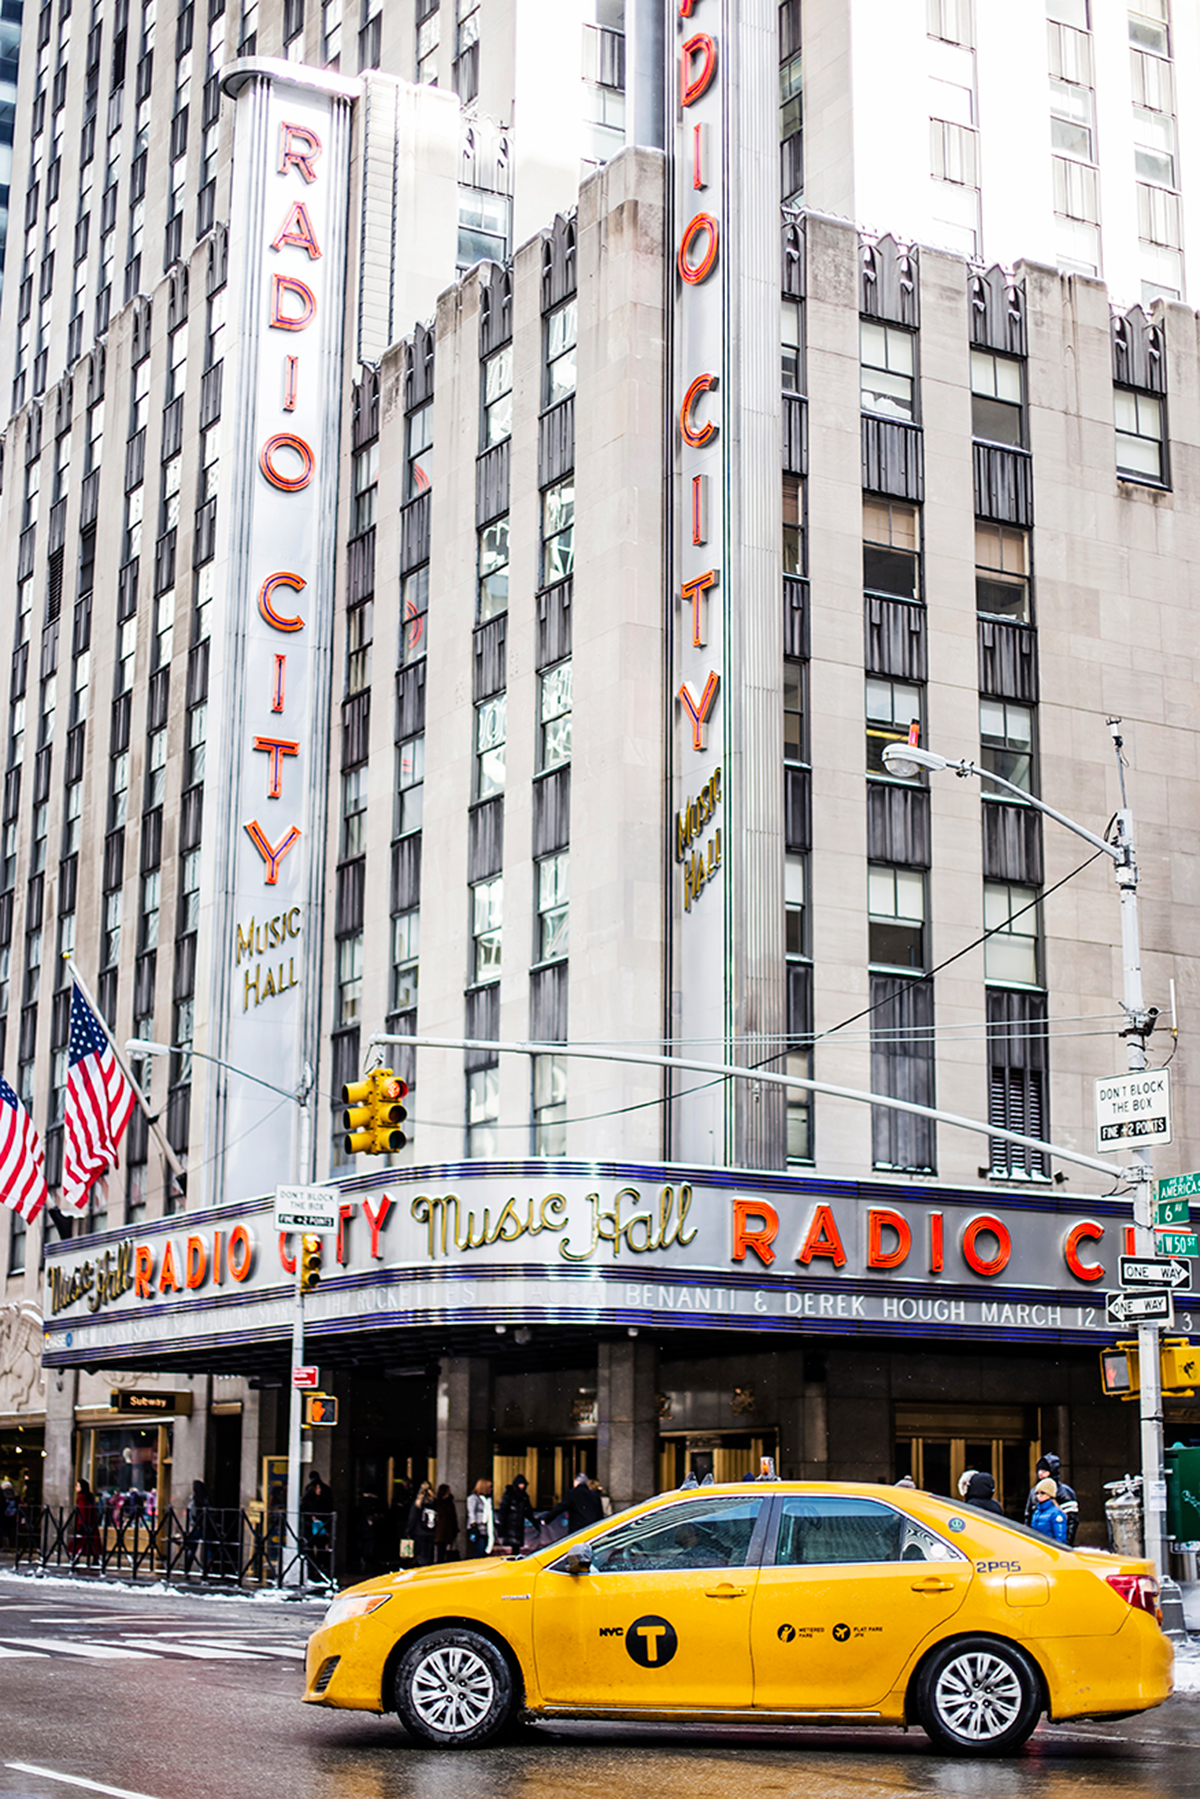 Radio City Hall Photos of Winter in New York City february 2015